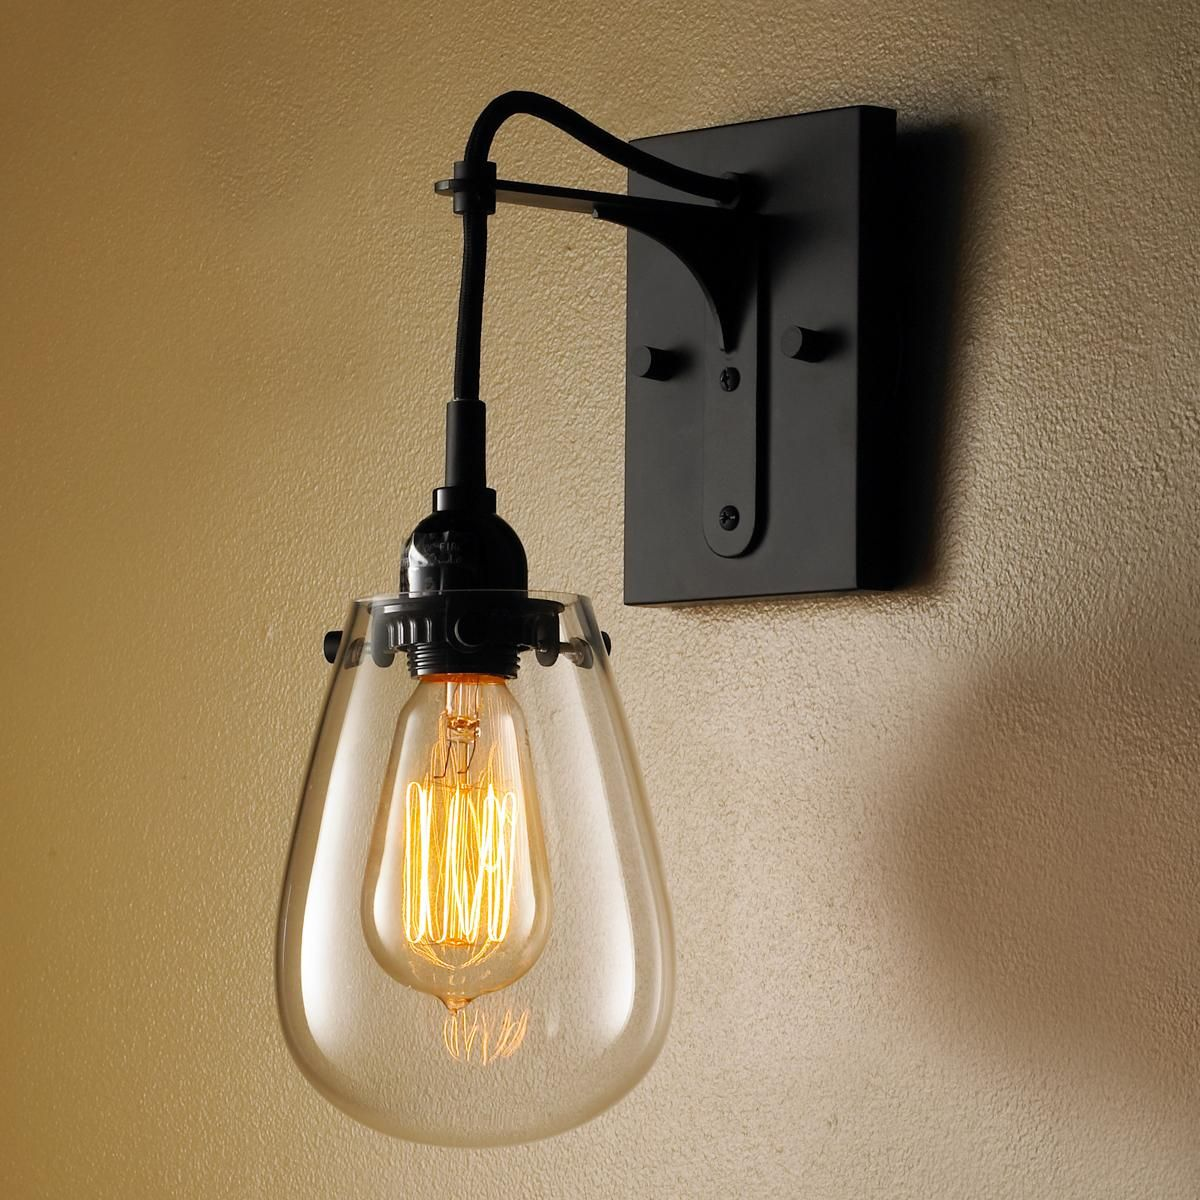 Cordless wall lamps - Tear Drop Glass Wall Sconce